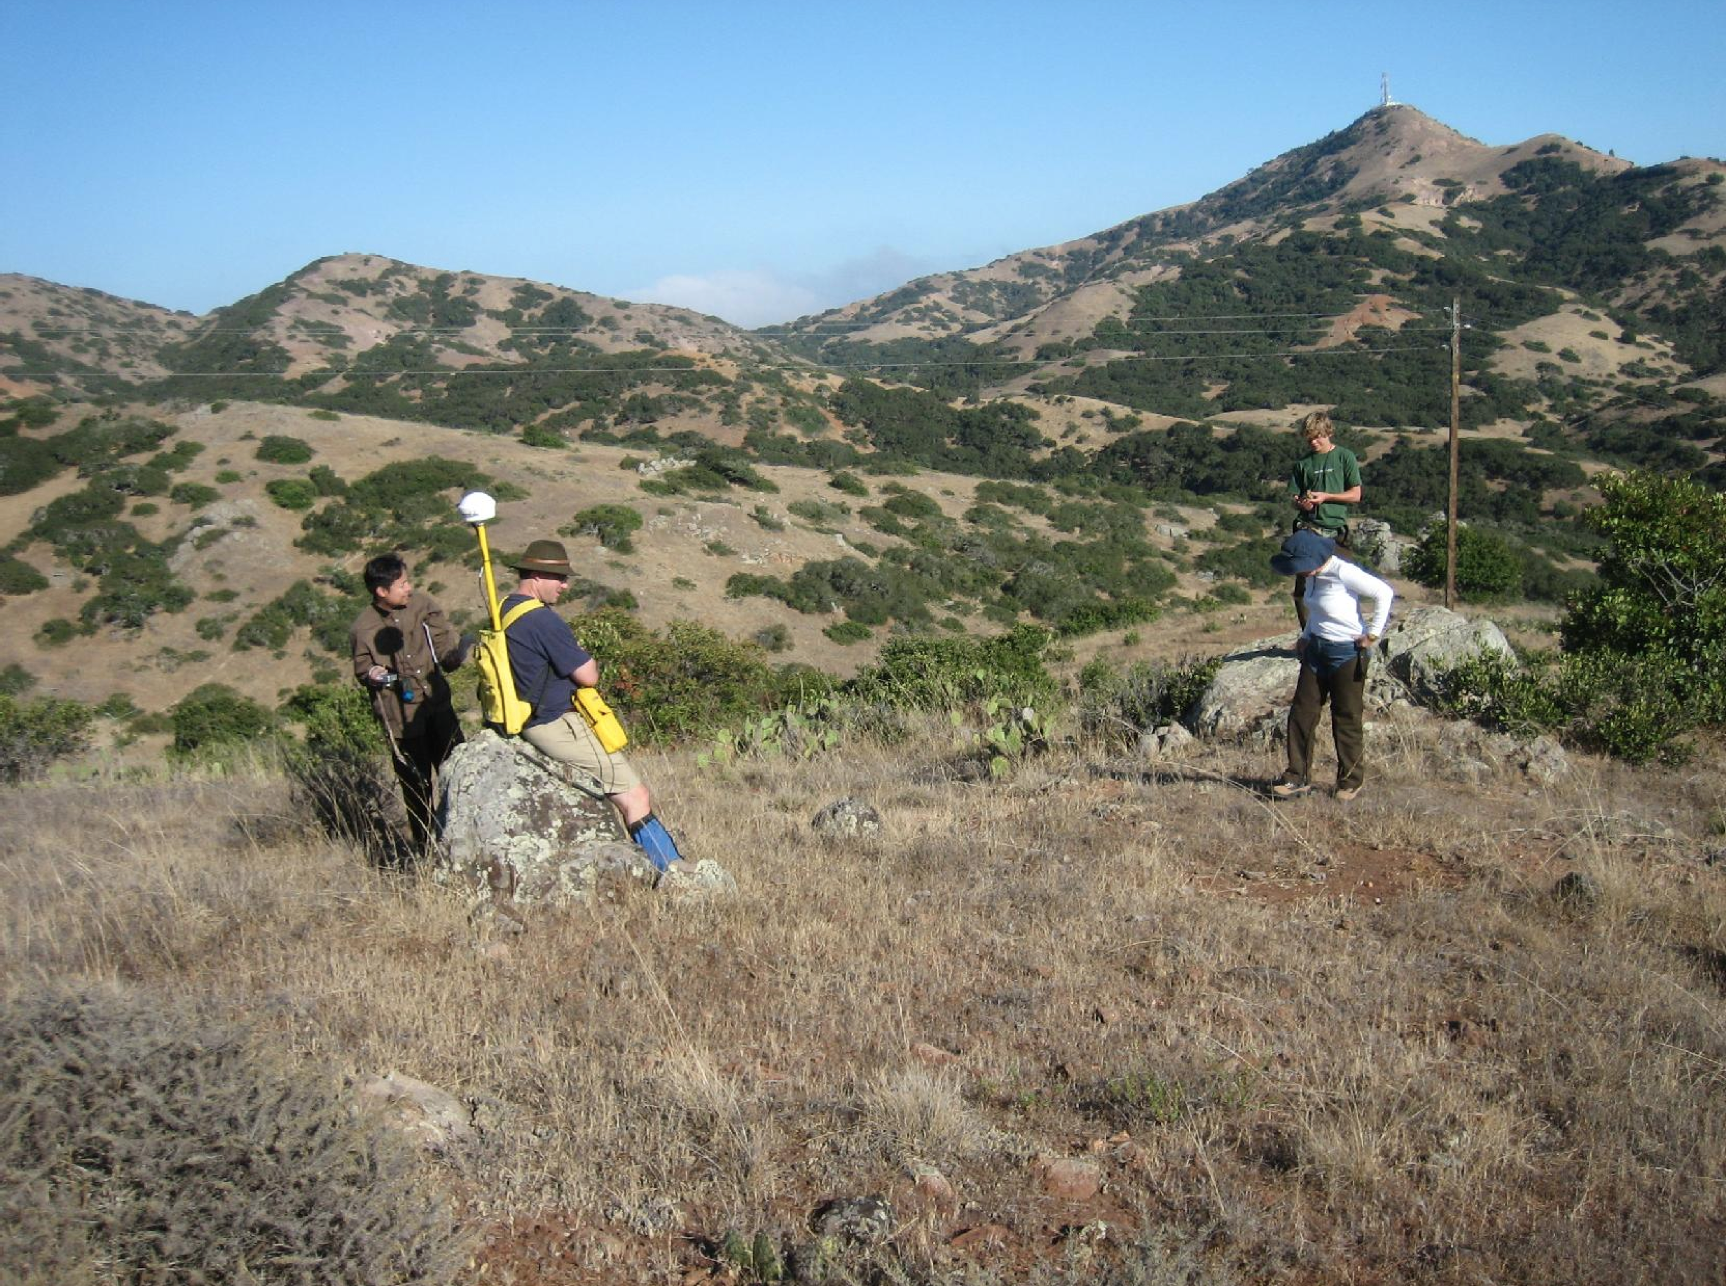 A volunteer survey team determines the boundary and type of an archaeological site found during the survey conducted to locate the sitesfrom which site signatures were developed.